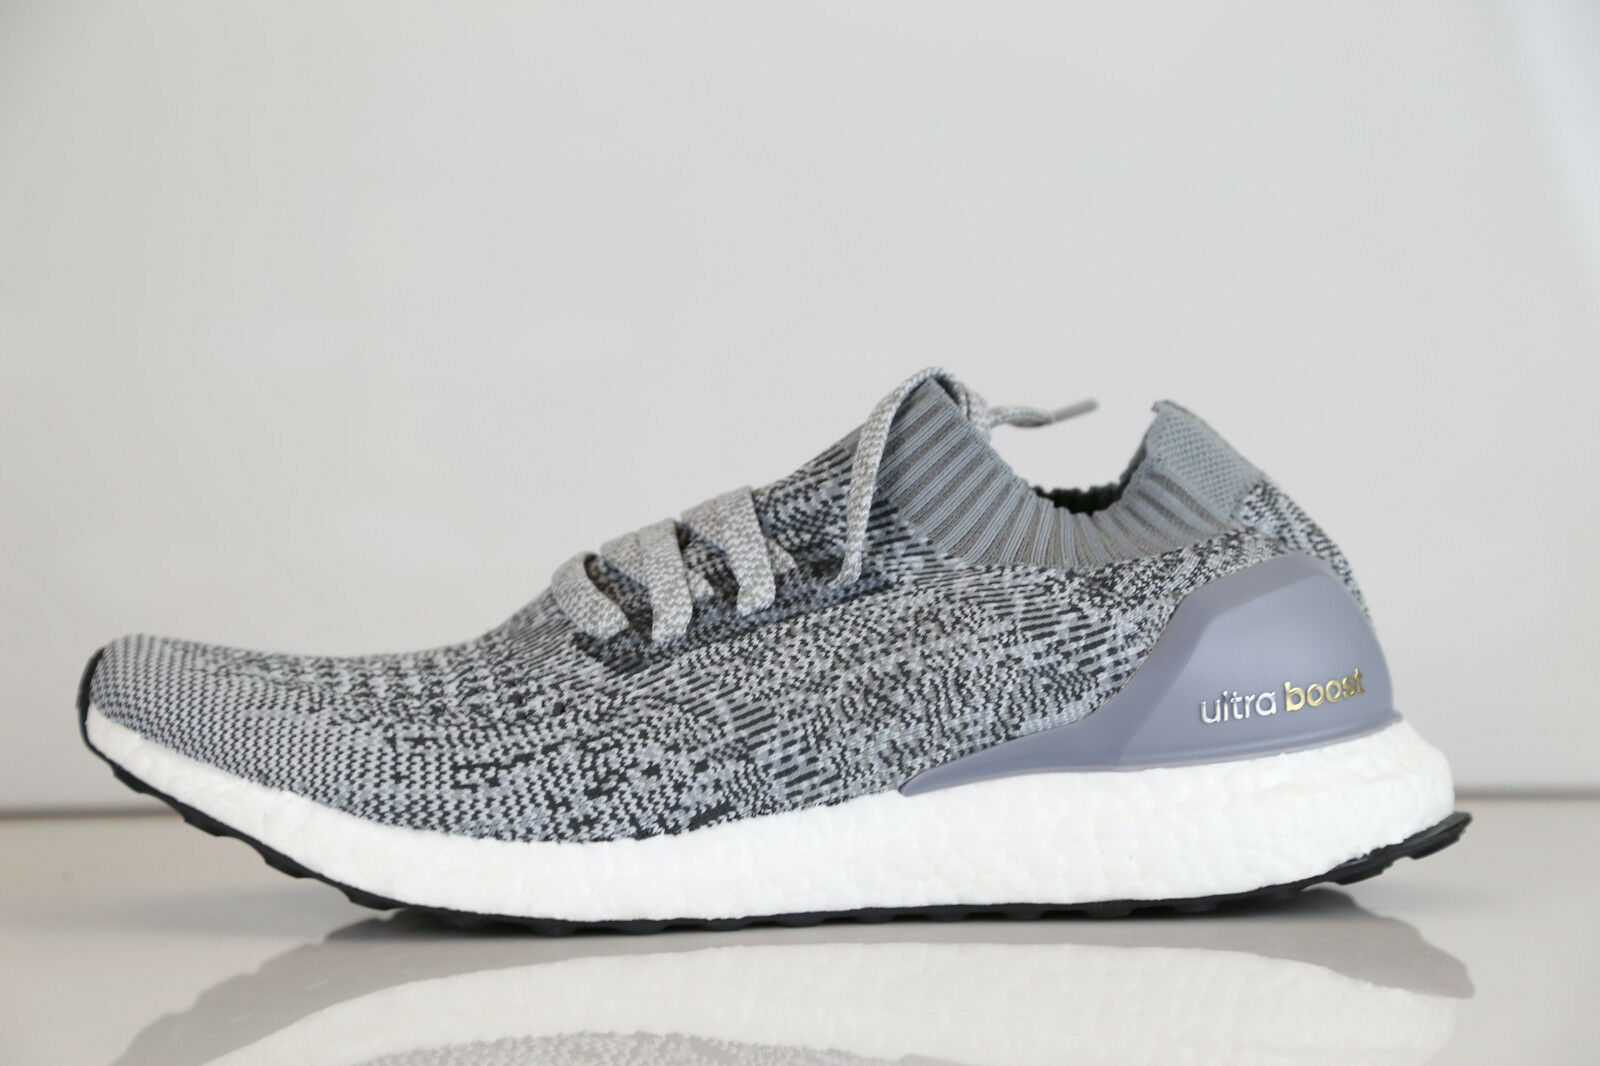 Adidas Ultra Boost Uncaged m Grey prime Charcoal BB3898 8.5-10.5 nmd prime Grey knit pk rf 610f02